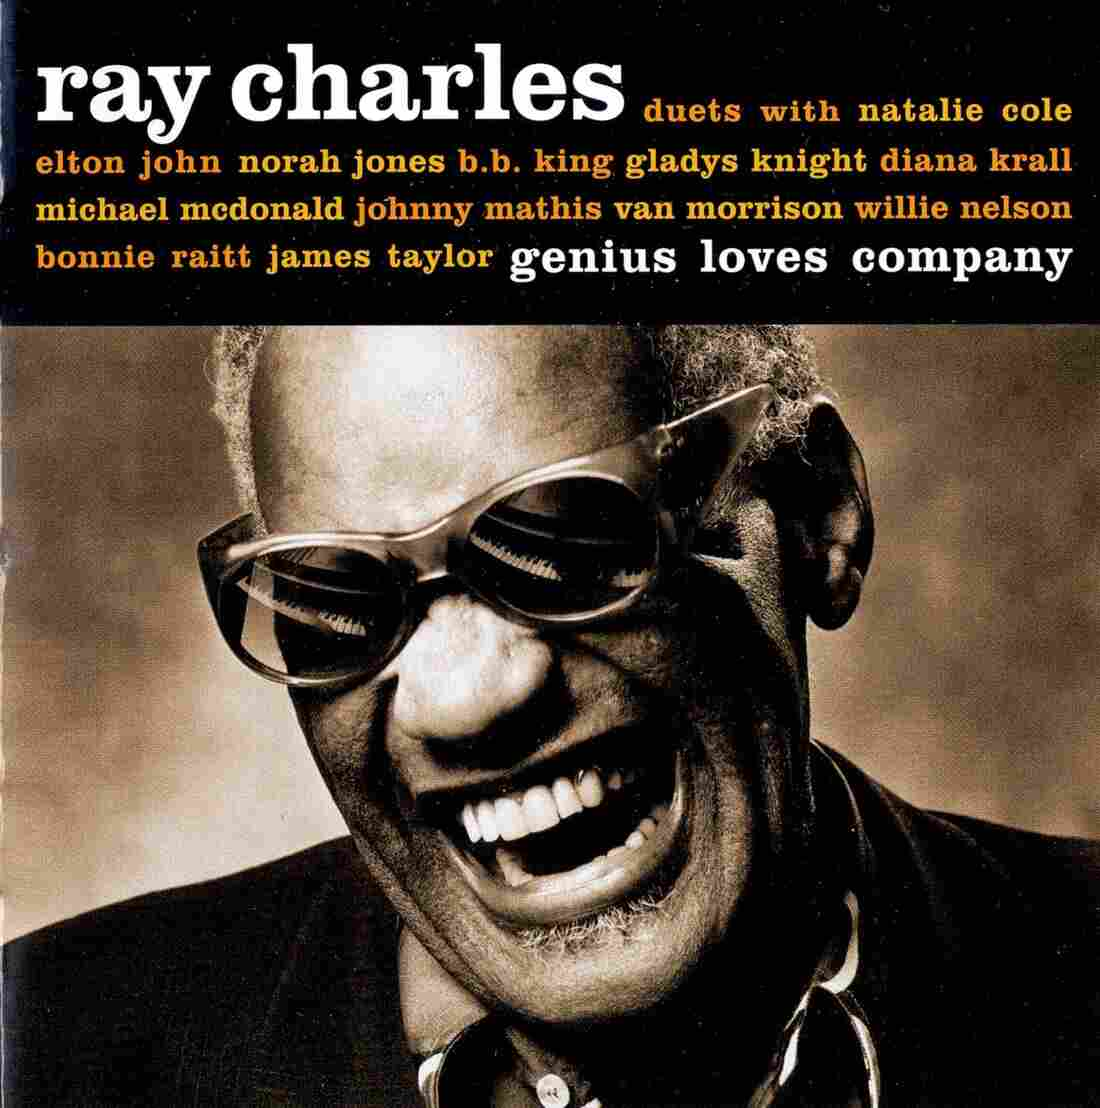 Ray Charles's Grammy-winning duets album Genius Loves Company.